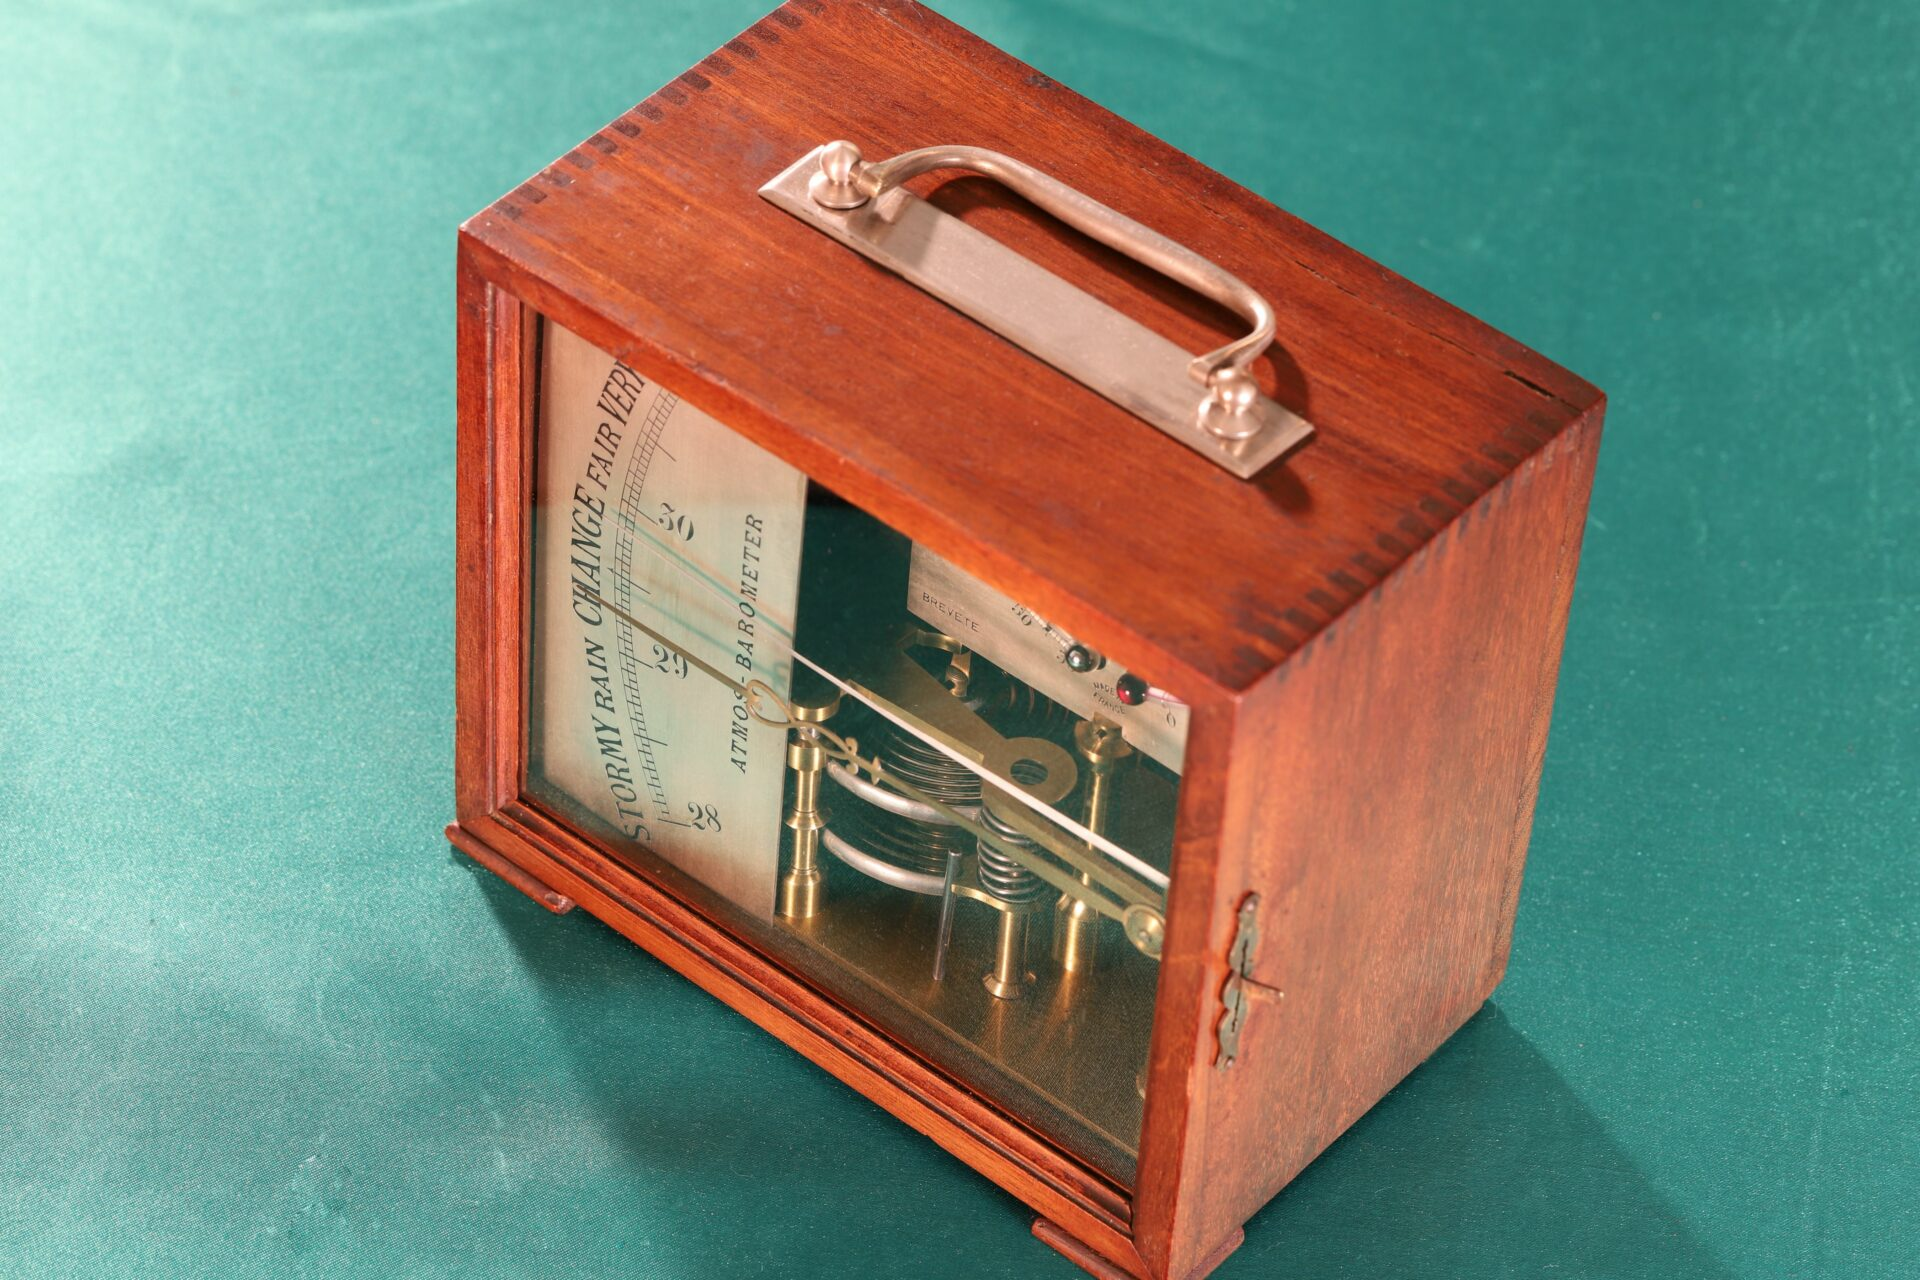 Image of the cased French Atmos Barometer c1875 taken from the right